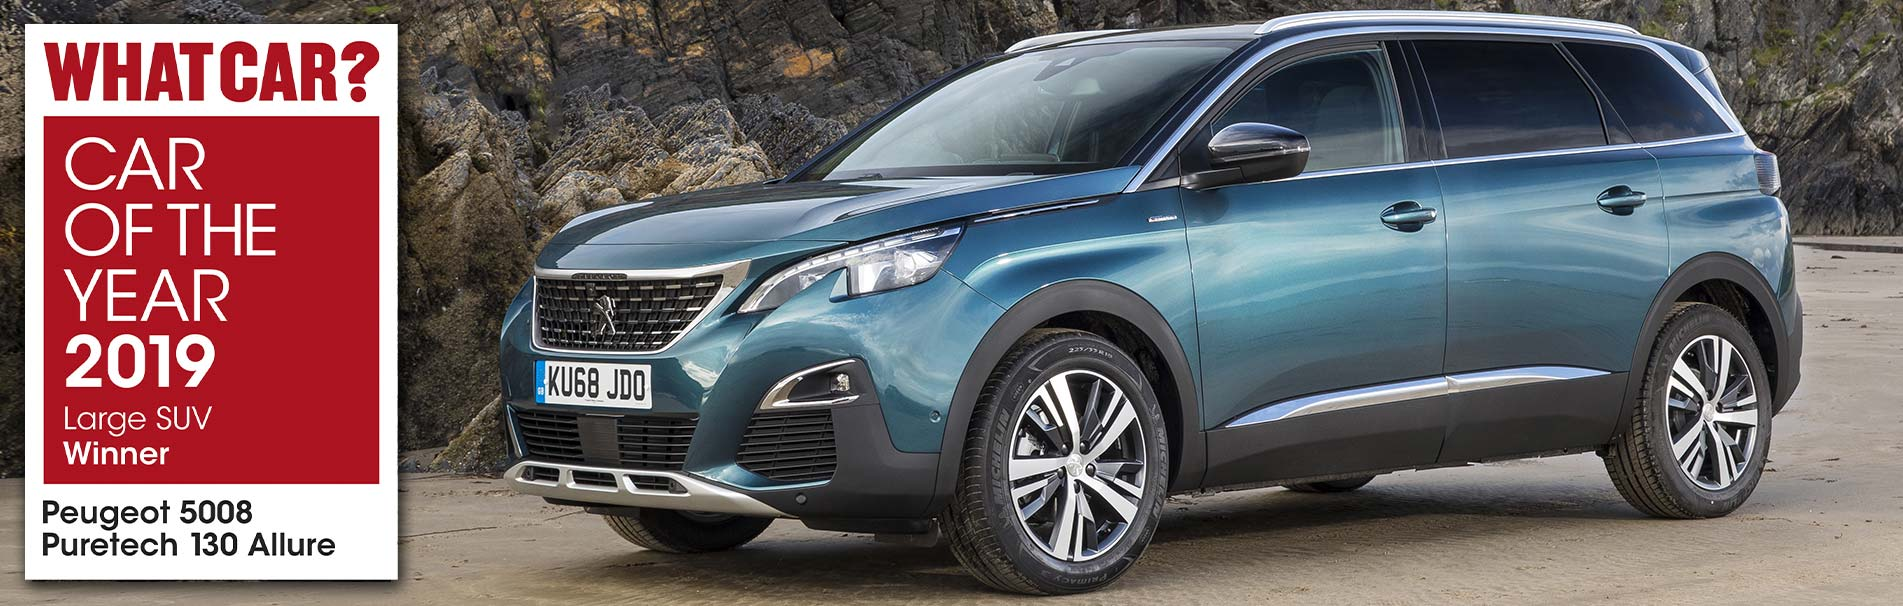 peugeot-5008-suv-wins-what-car-of-the-year-2019-awards-sli